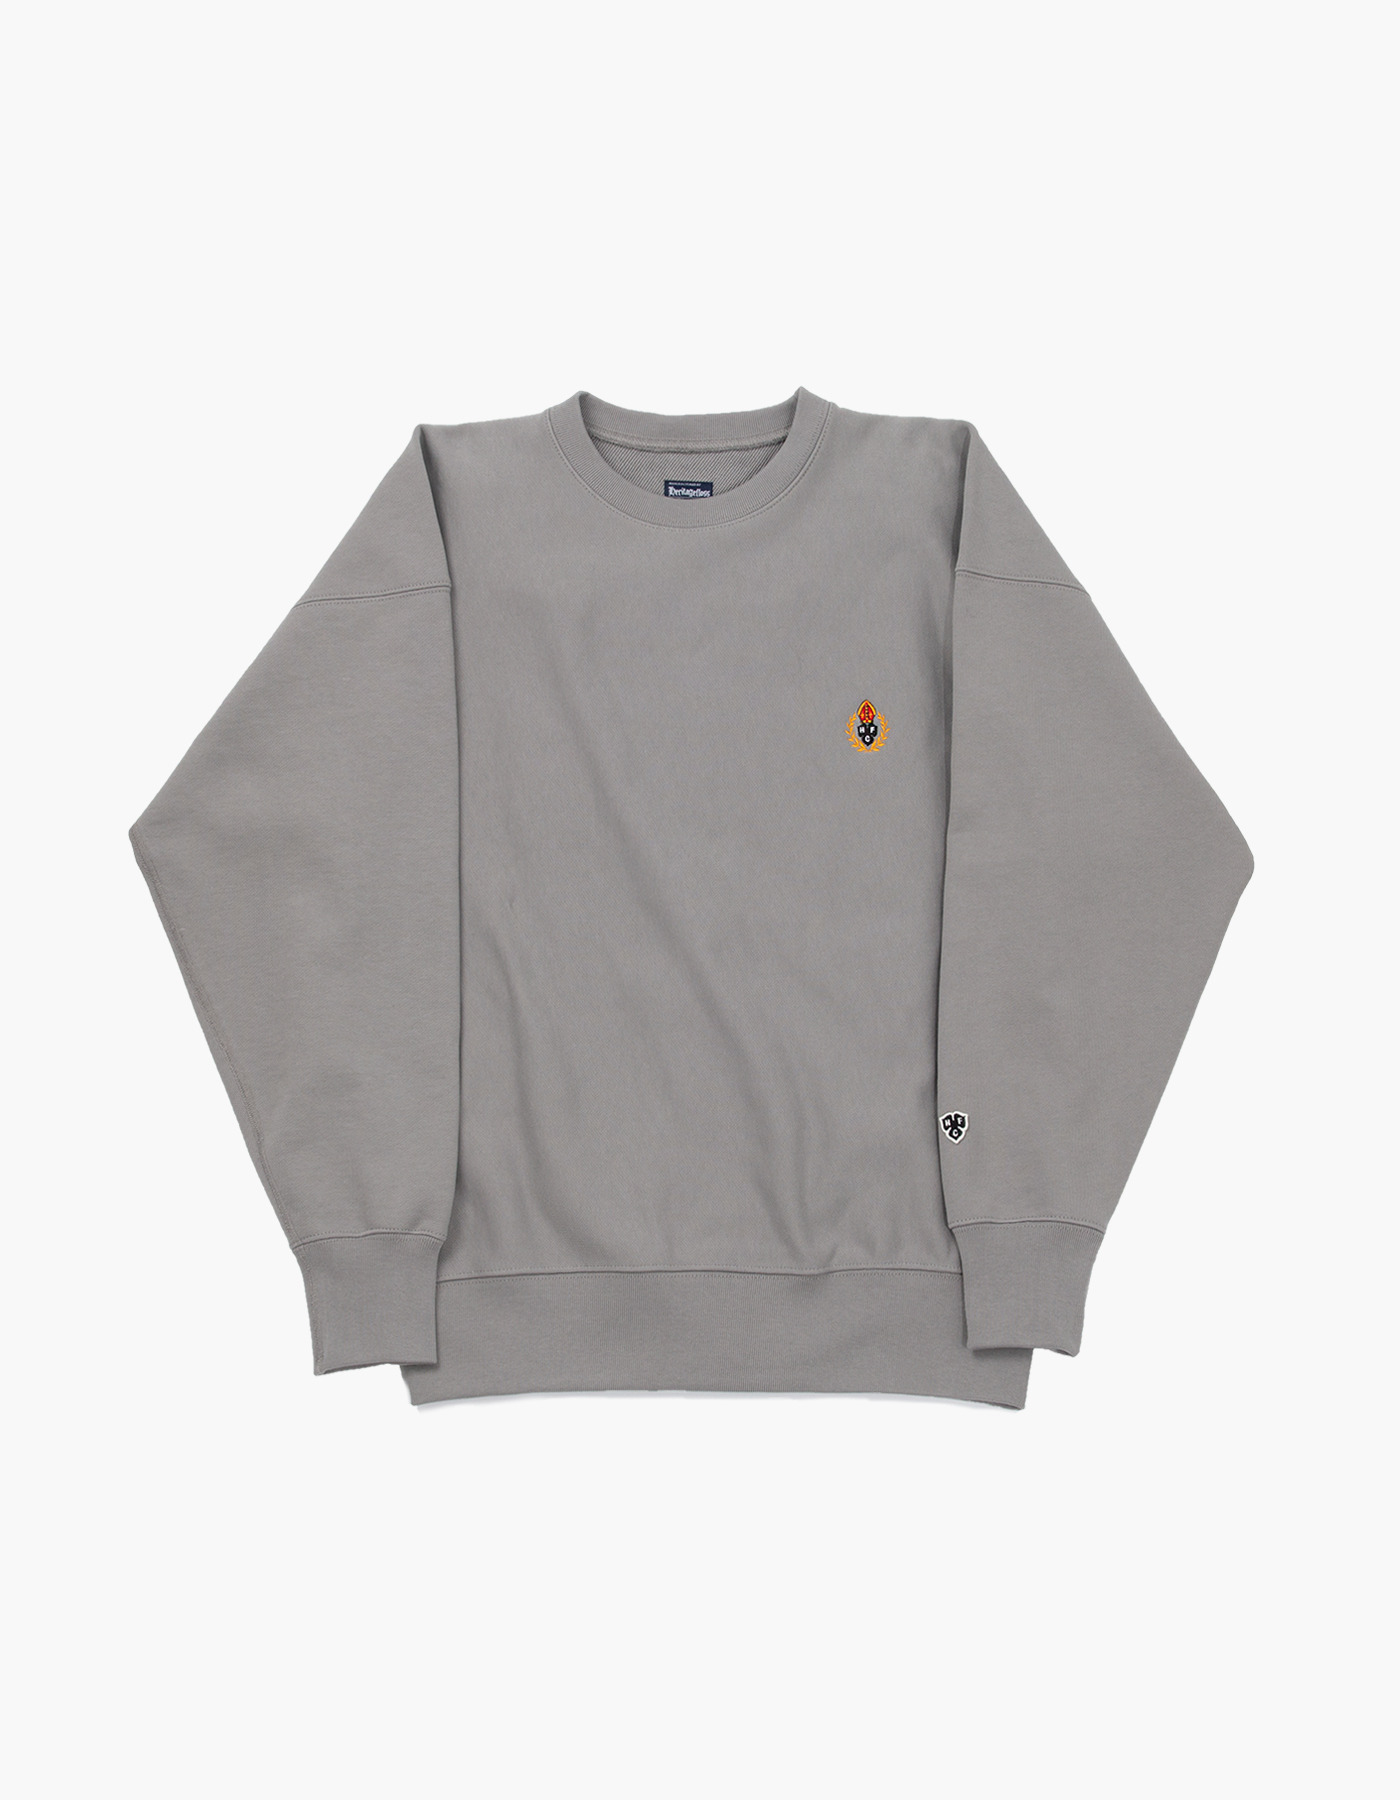 231 HFC CREWNECK / GREY